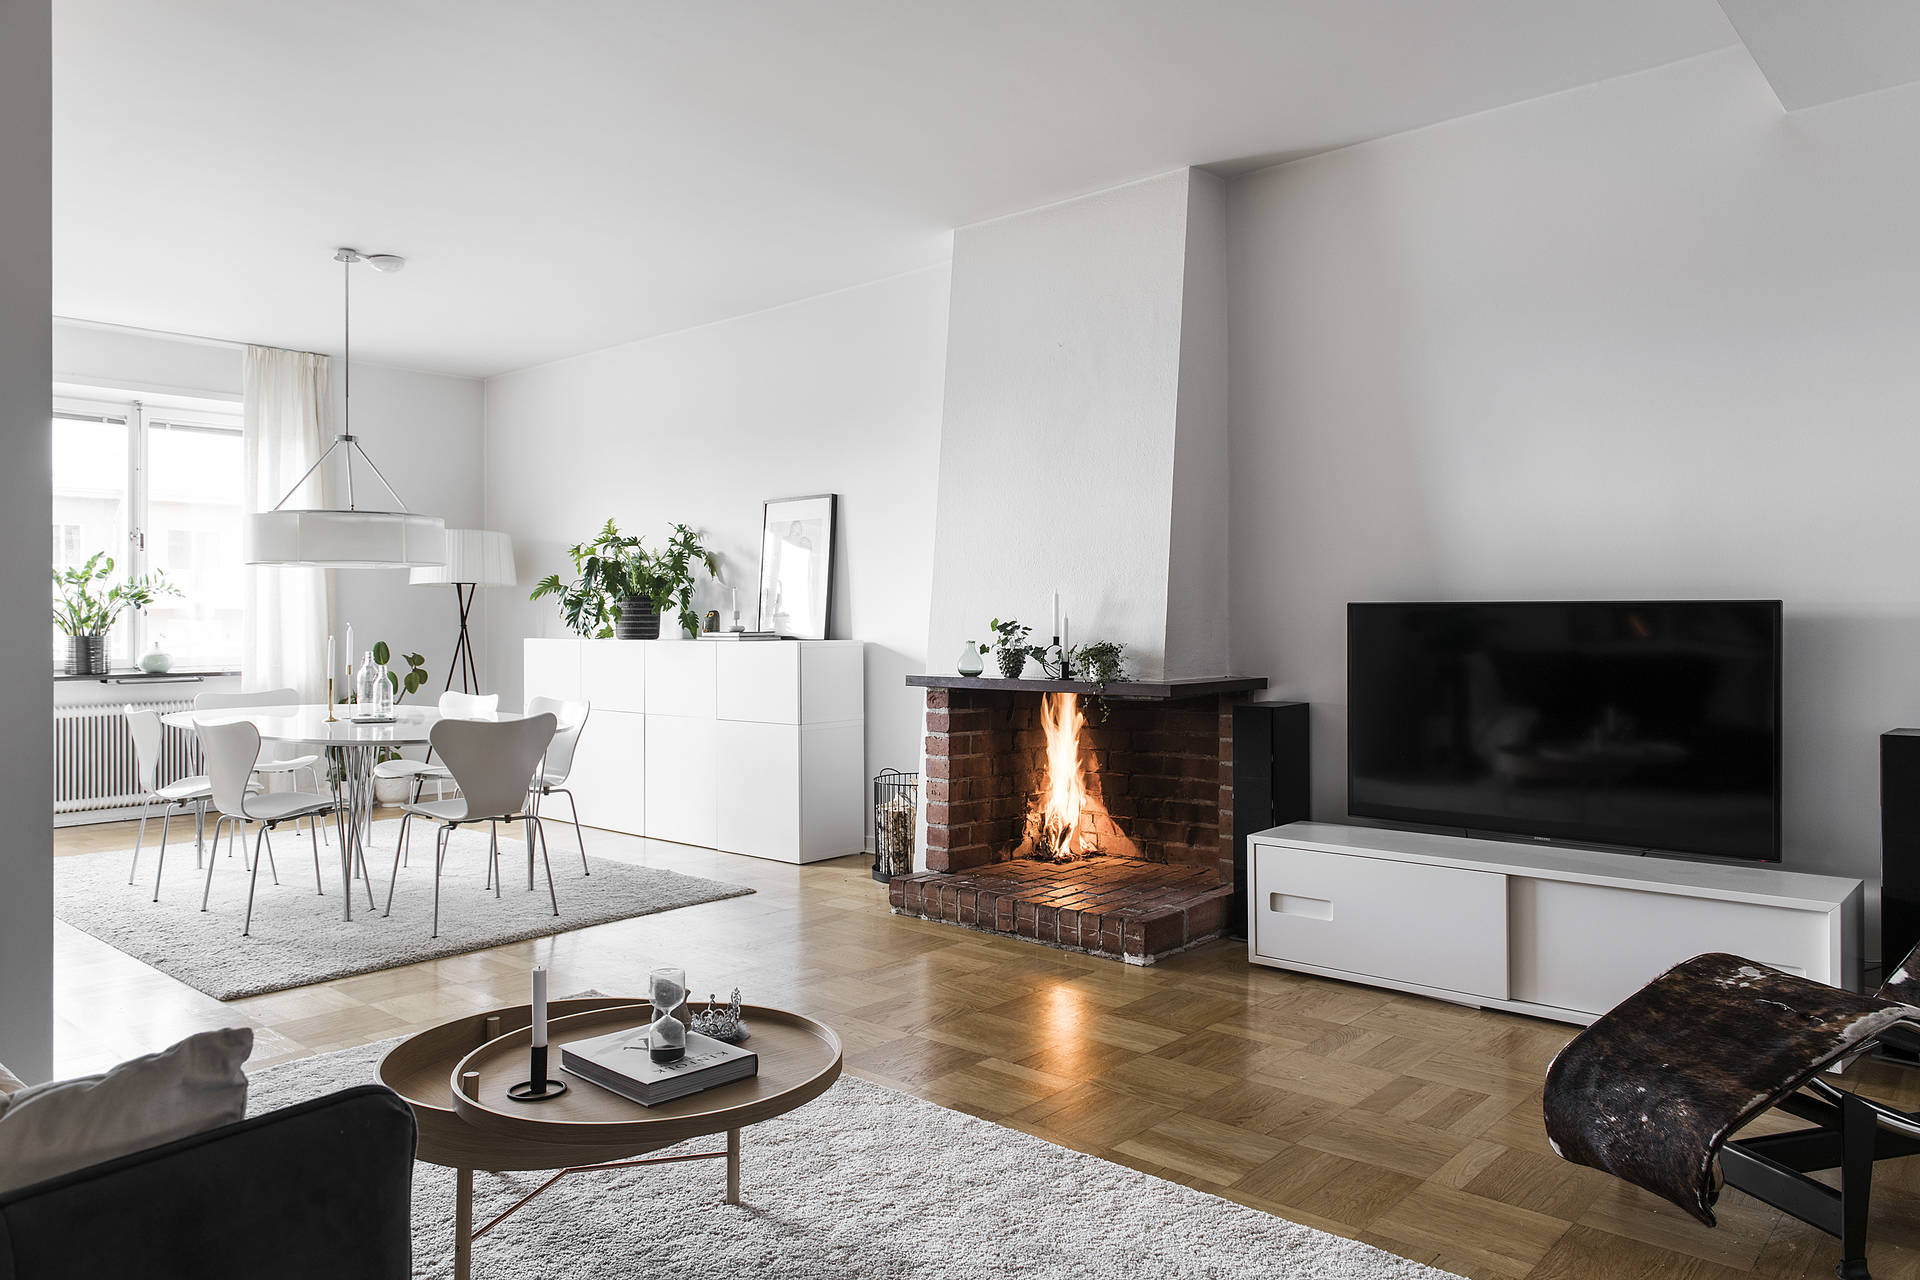 The exposed bricks of the fireplace adds character and warmth to the otherwise cool white interior.